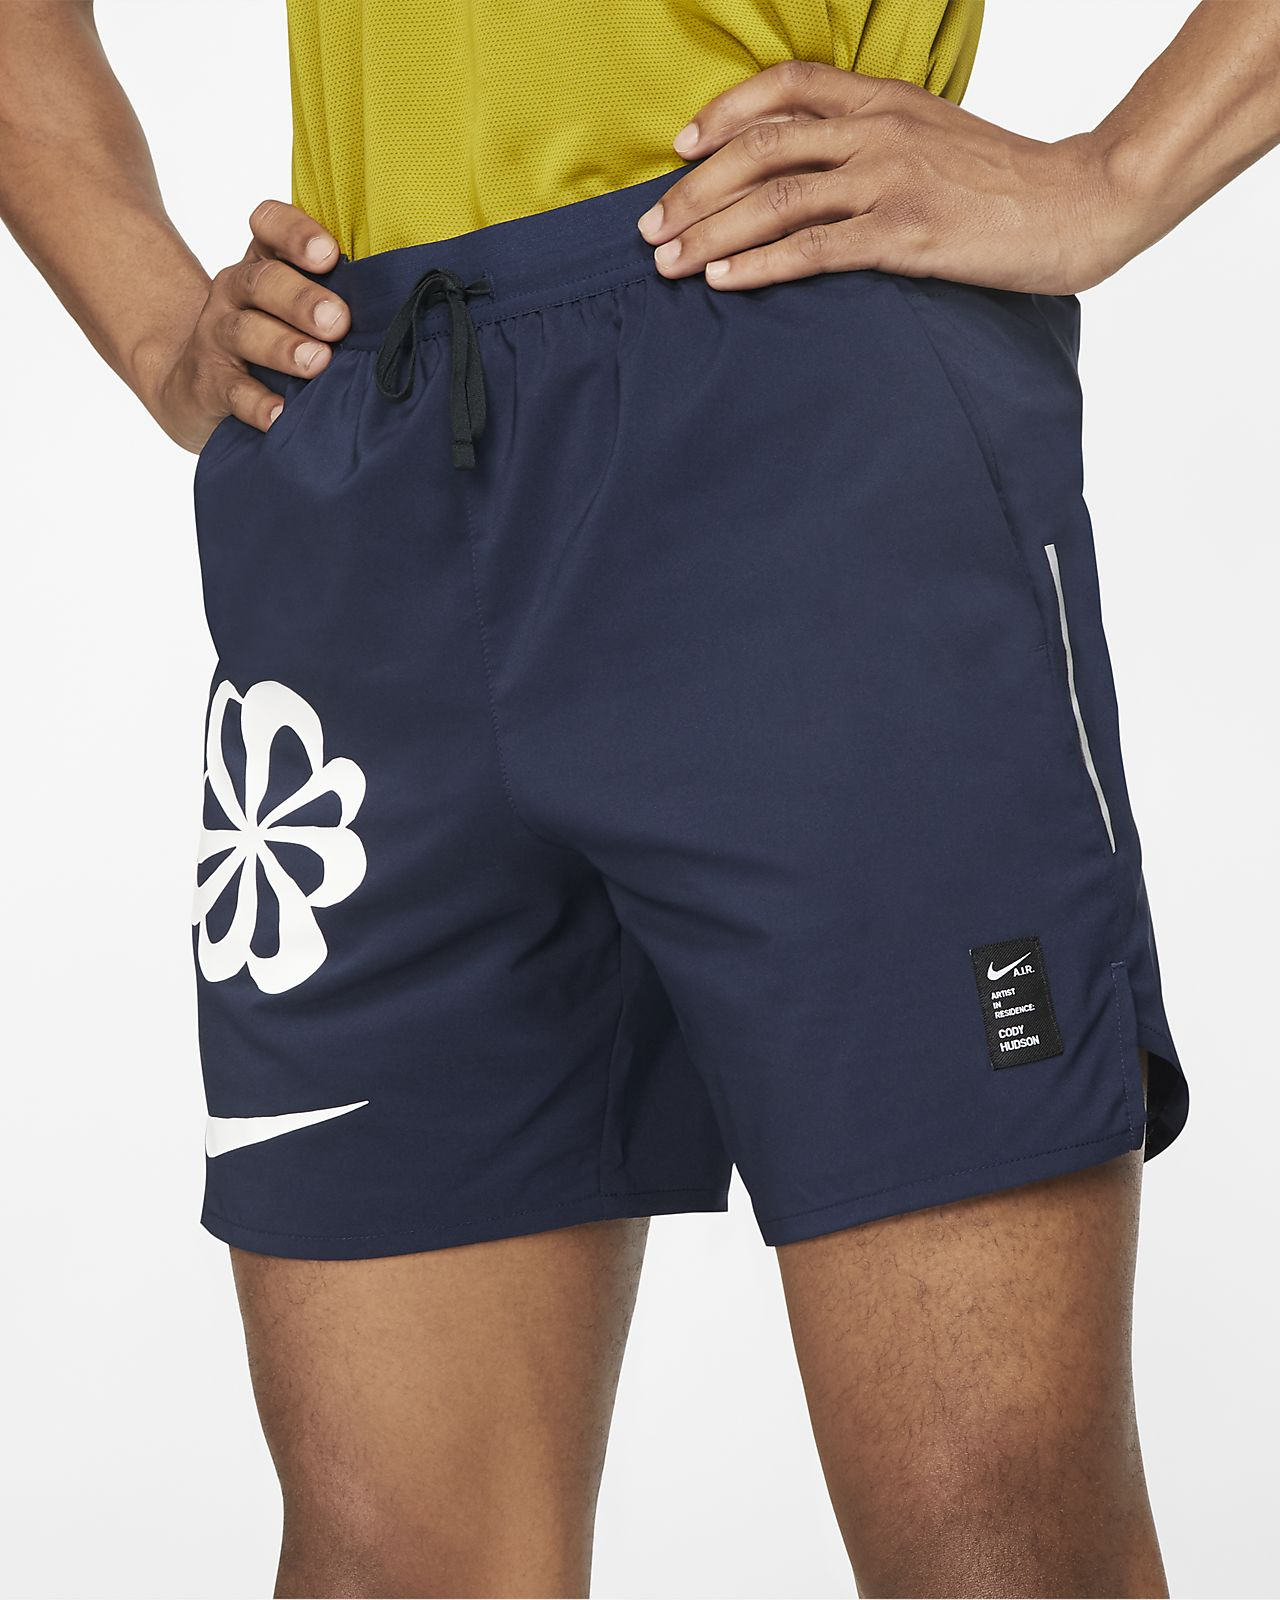 Nike Dri-FIT Flex Stride A.I.R. Cody Hudson Men's Graphic Running Shorts